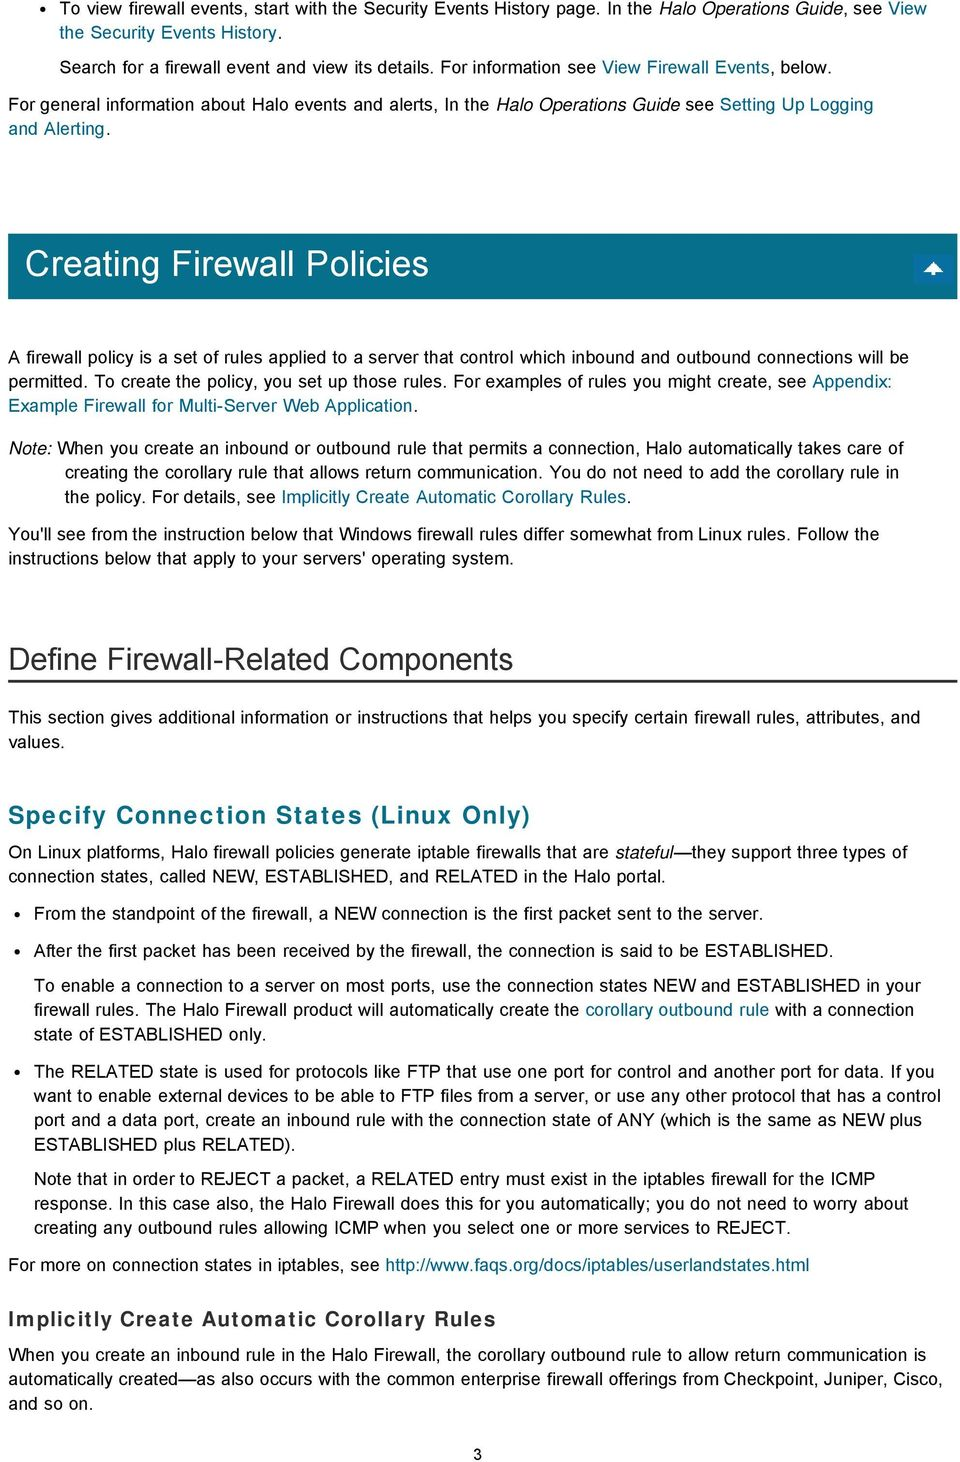 Creating Firewall Policies A firewall policy is a set of rules applied to a server that control which inbound and outbound connections will be permitted. To create the policy, you set up those rules.